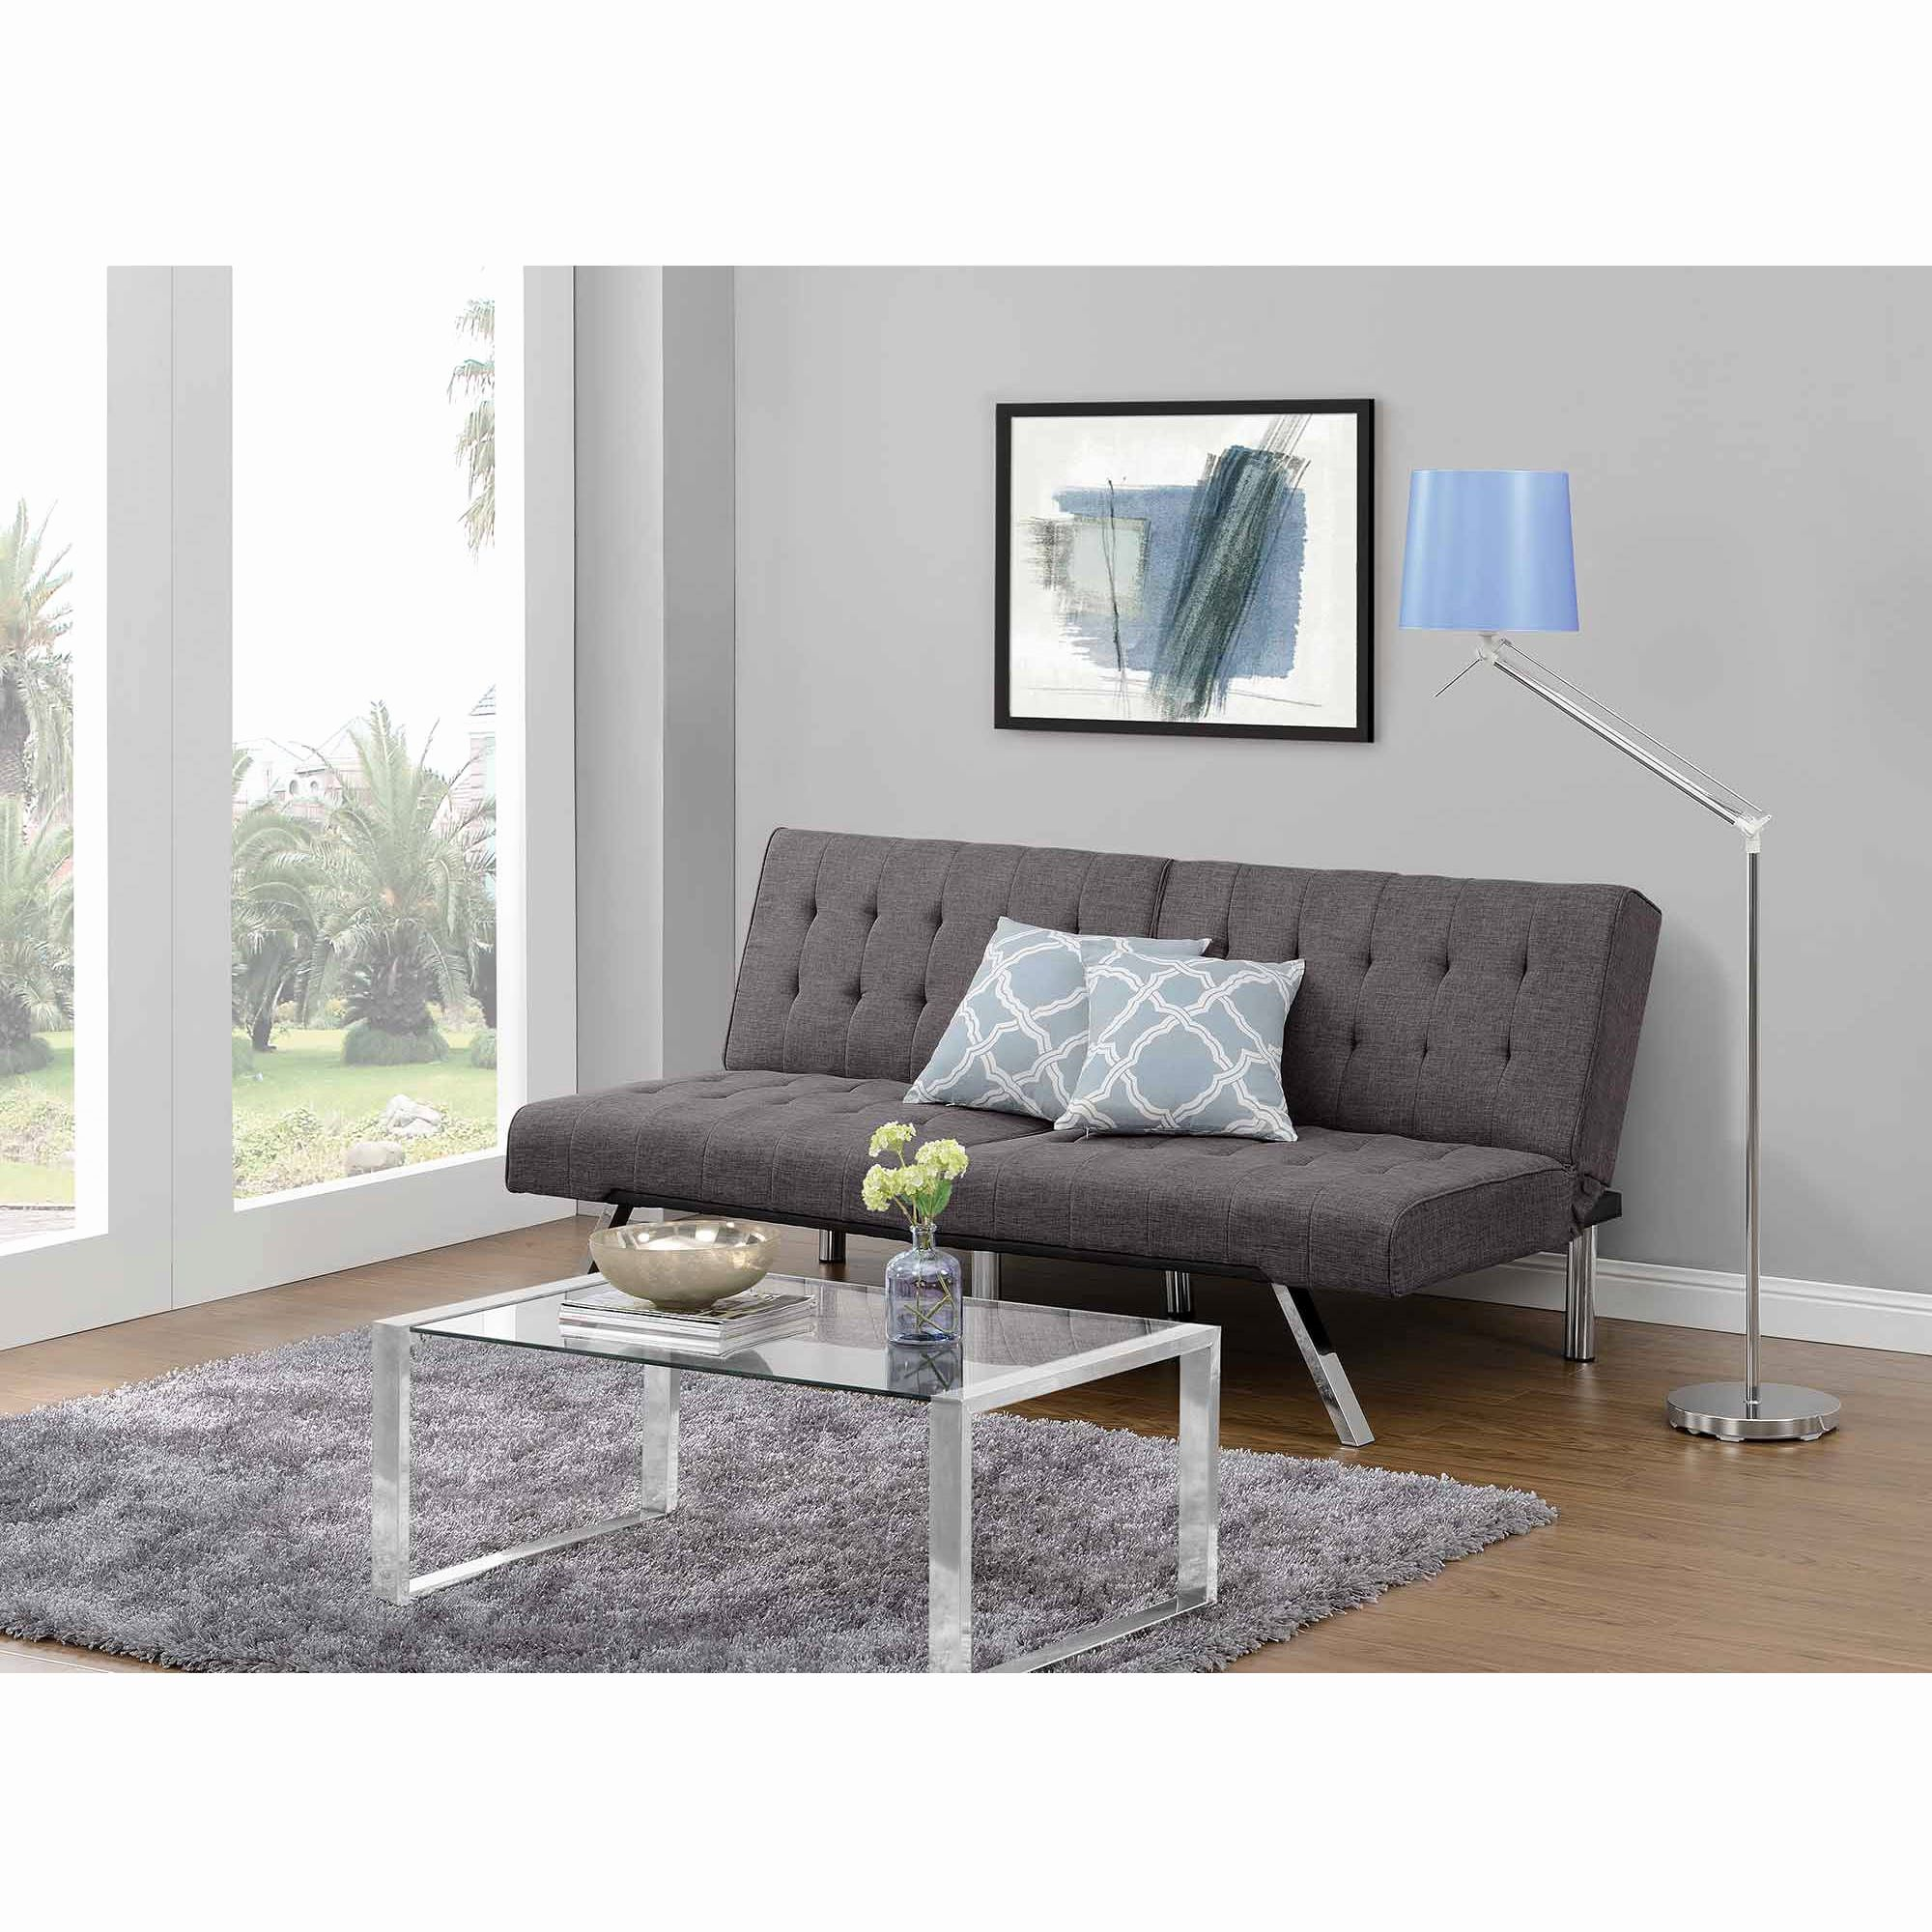 Idea Office Sofa Bed Picture Best Choice Products Modern Entertainment Futon Fold Up